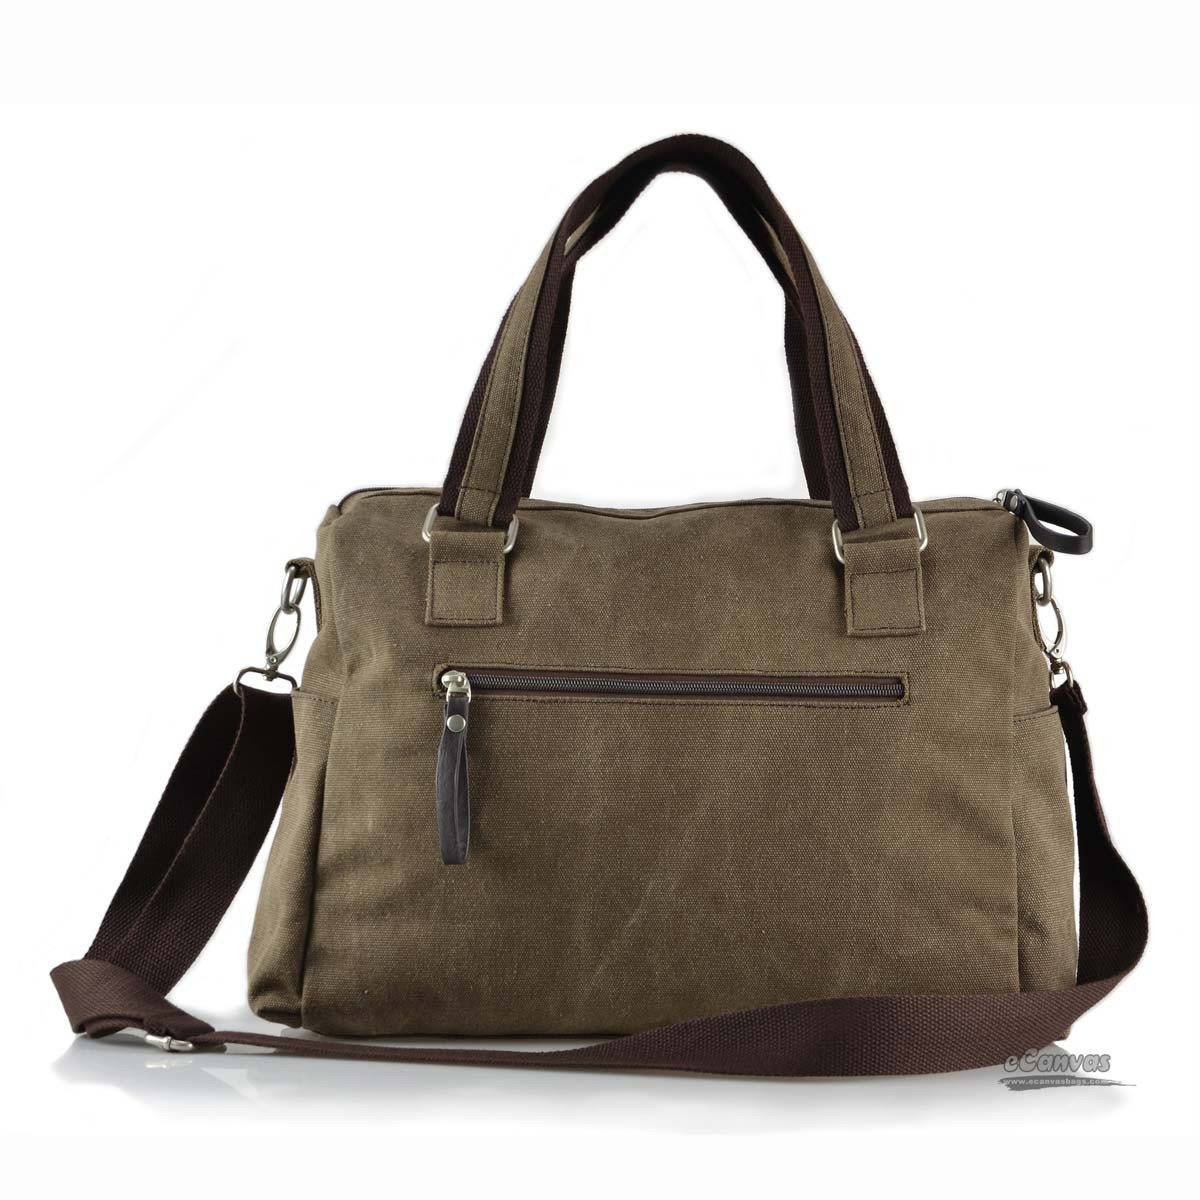 Awesome Grey Leather Kalifornia Shoulder Bag From Kenzo Featuring Top Handles, A